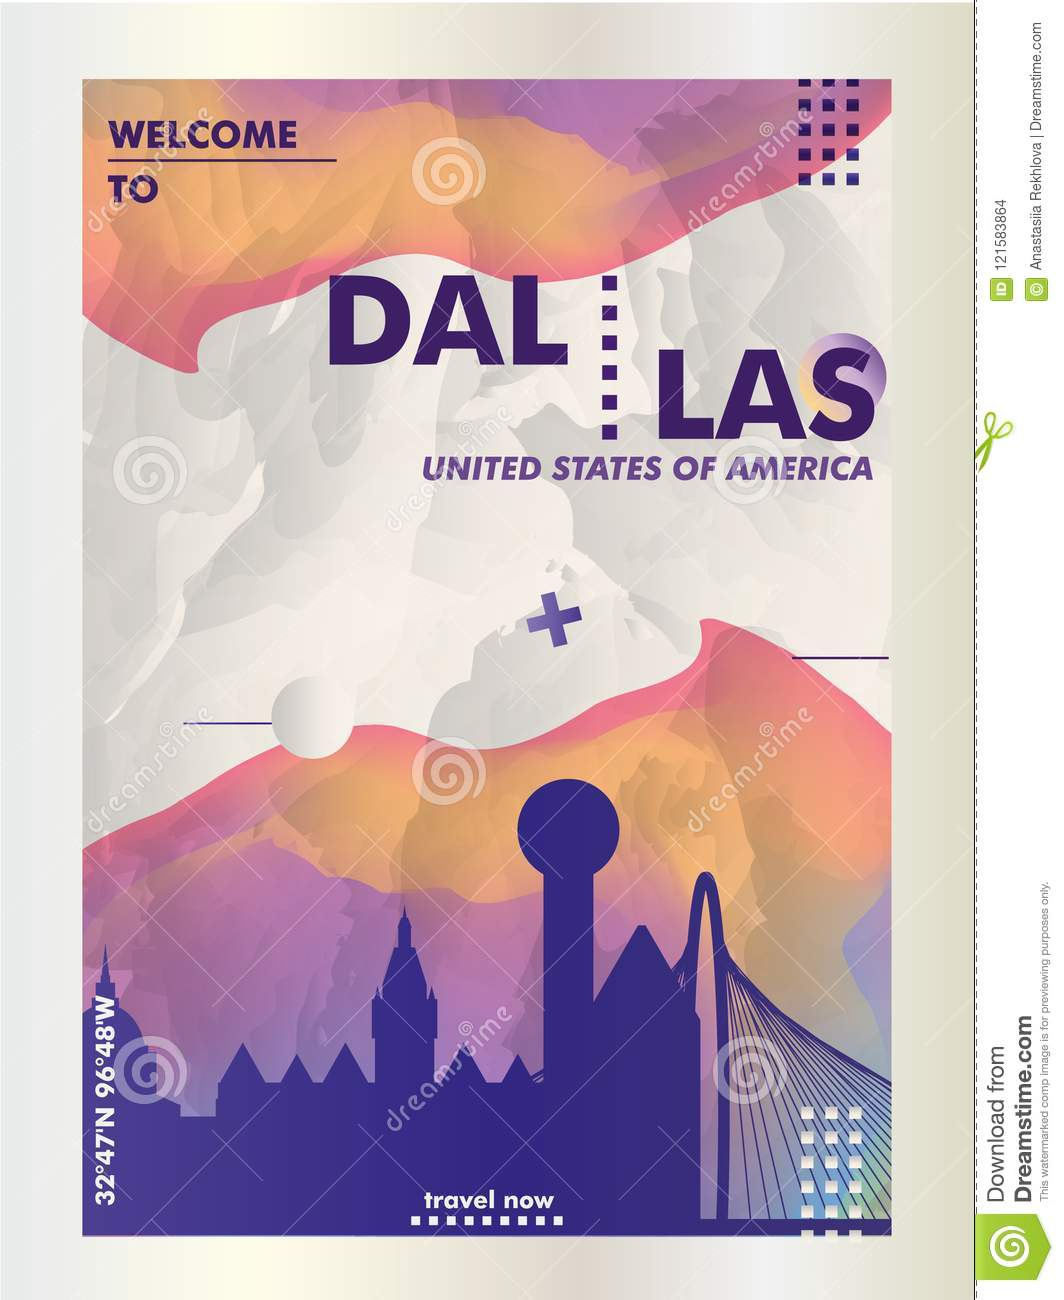 USA United States of America Dallas skyline city gradient vector